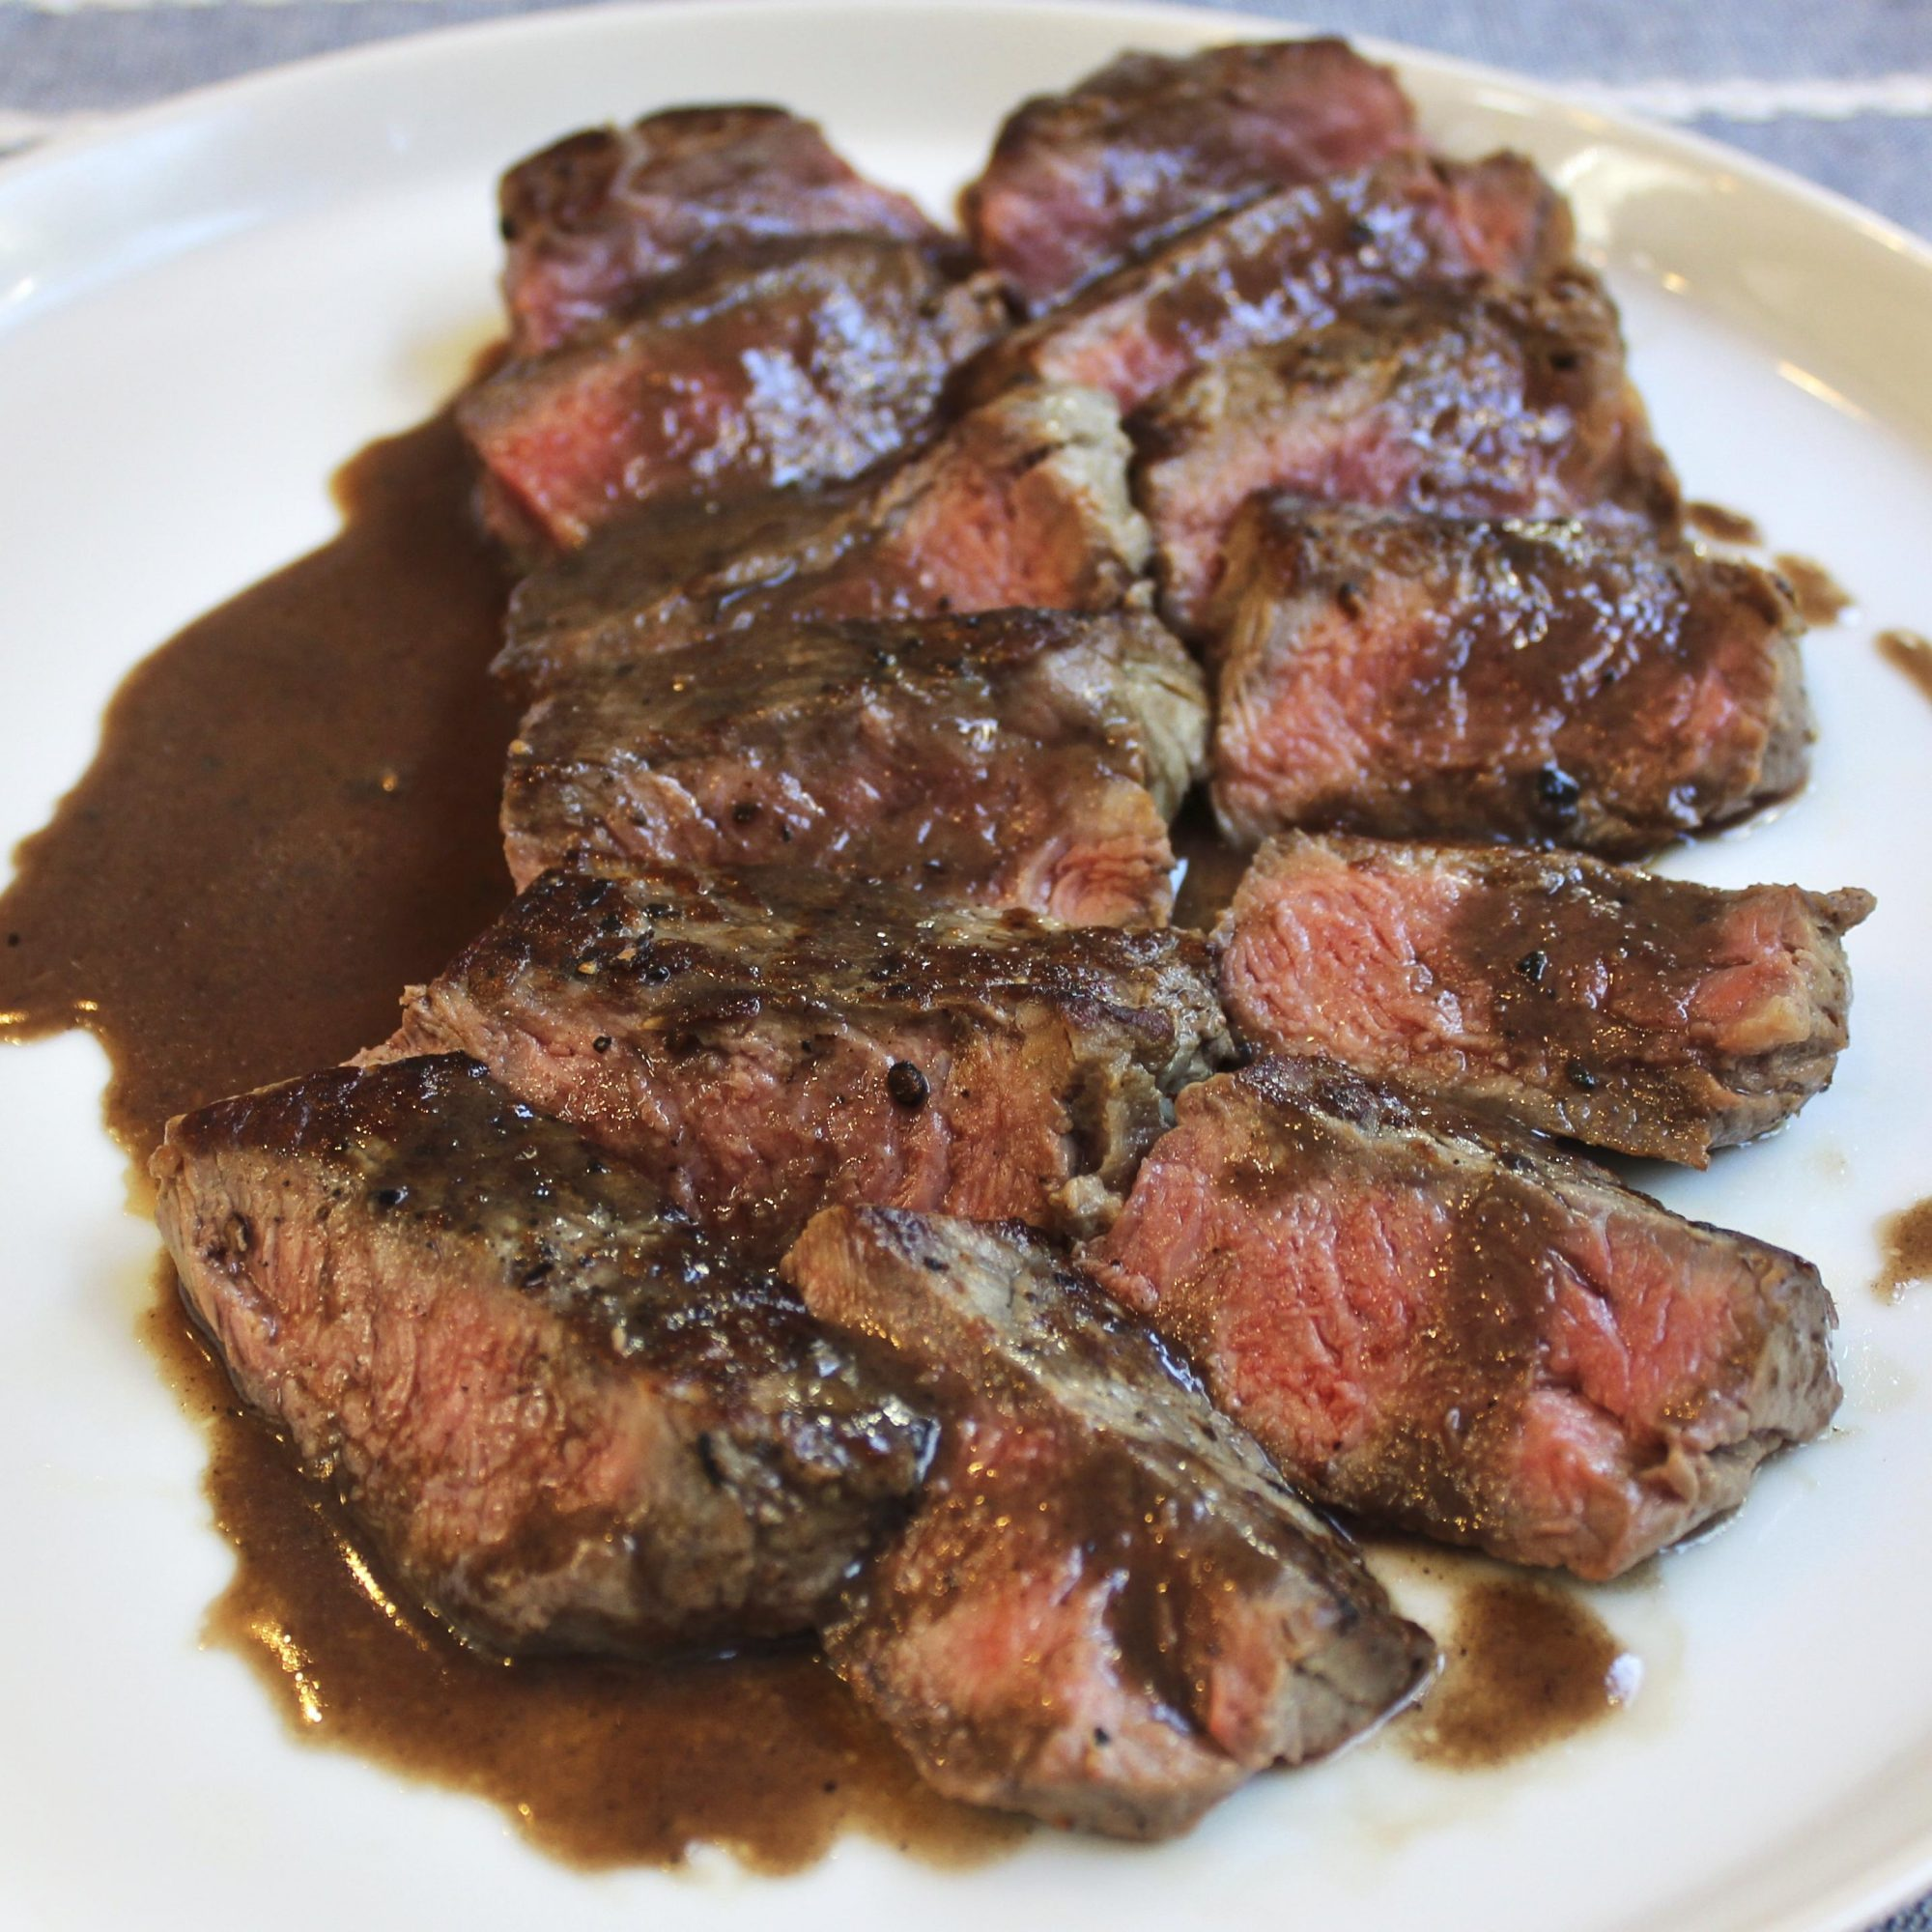 Bite sized pieces of medium rare New York Strips served on a low rimmed white plate and topped with a bordelaise pan sauce